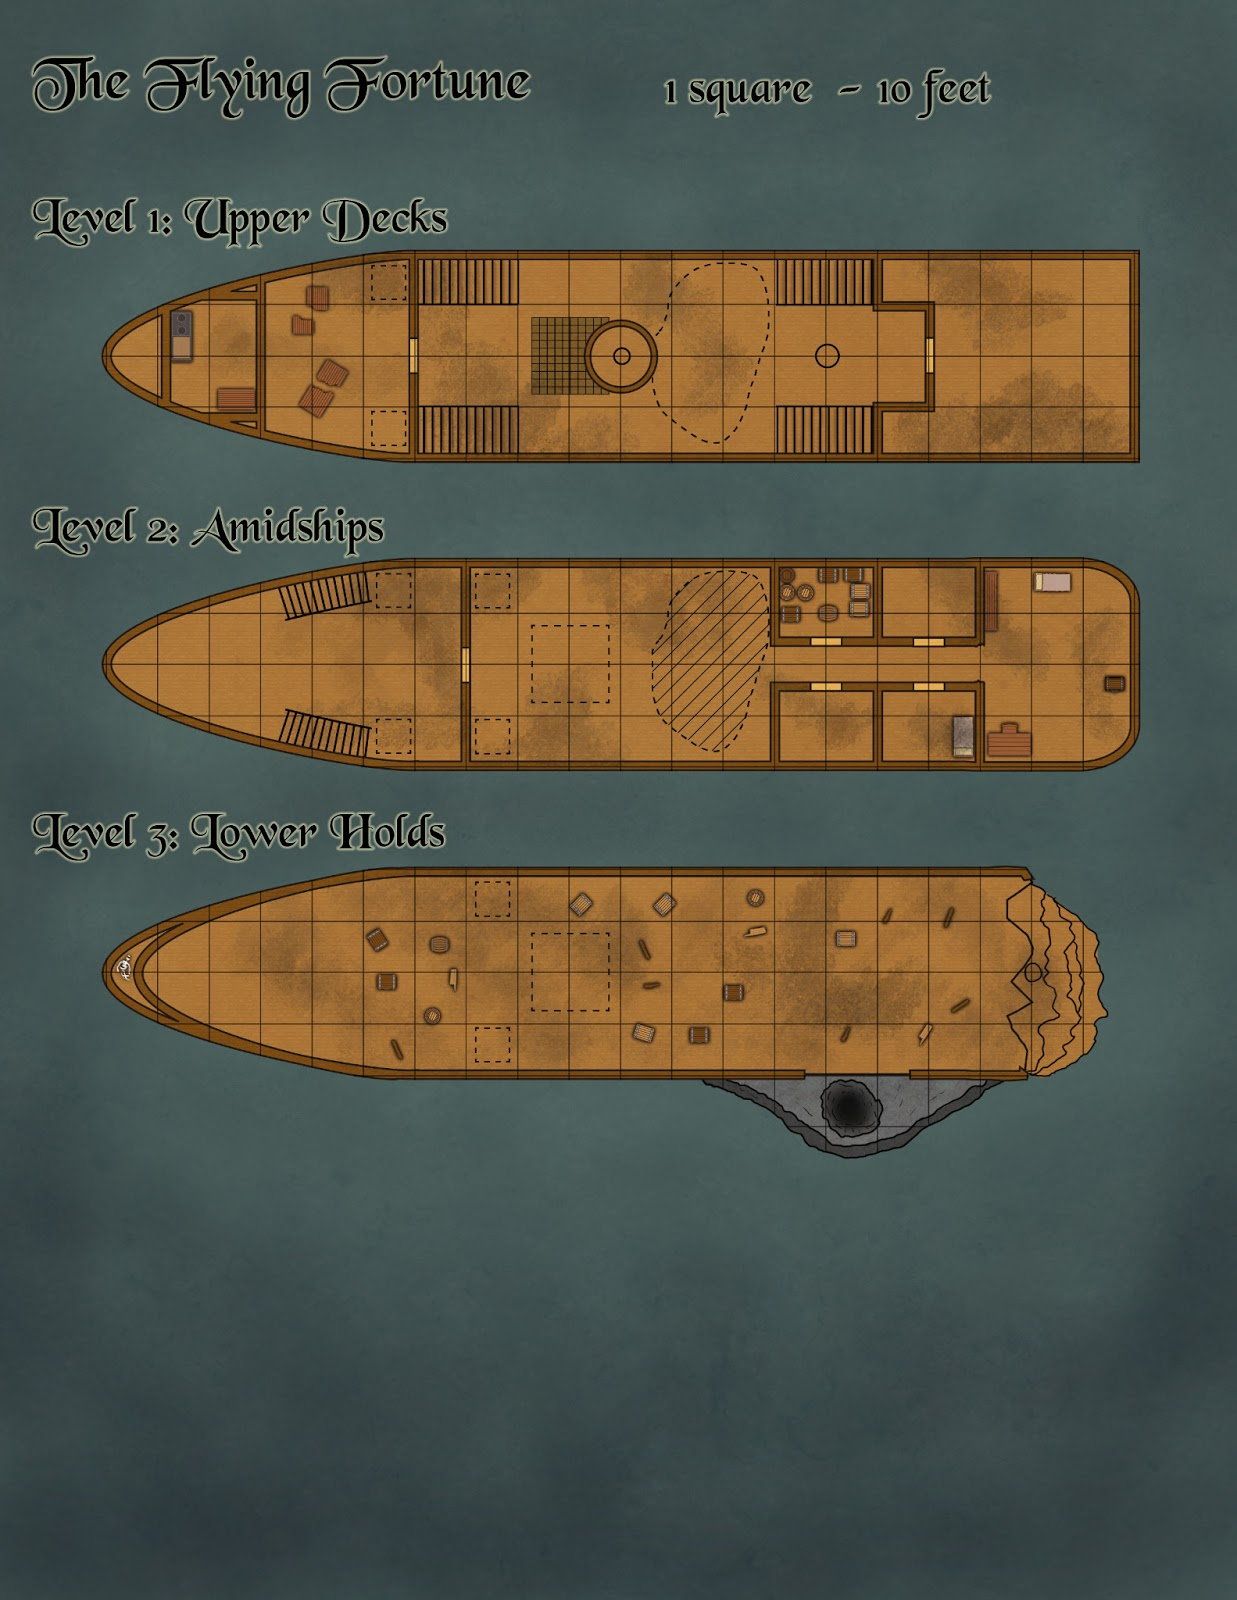 Pirate ship deck plans for Deck blueprints